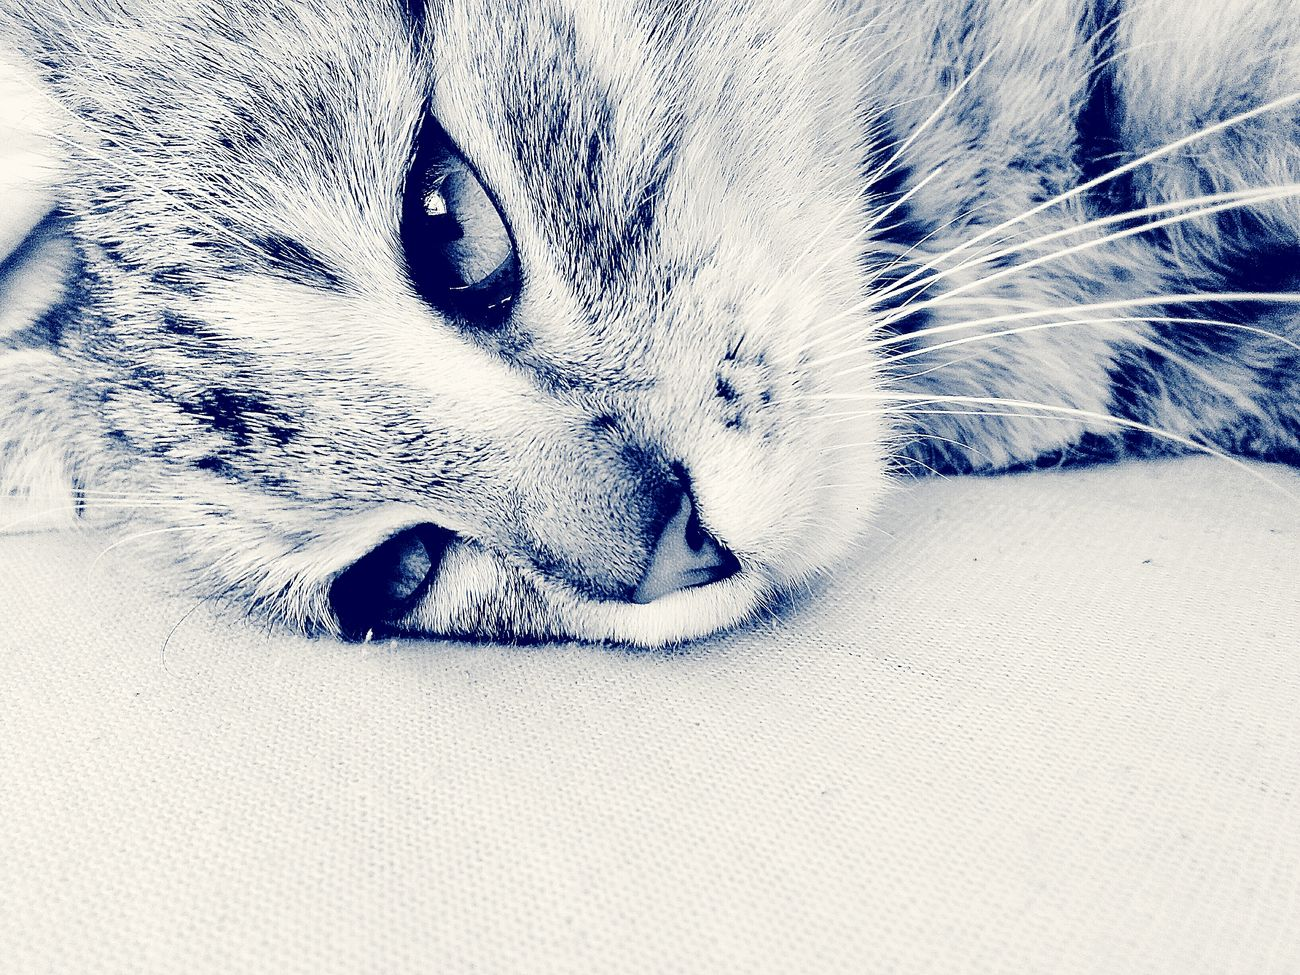 Relaxing Edit My Cat♥ Lightness Hello World Eyes That's Me Cat♡ Enjoying Life Nature Photography Taking Photos Thinker Hanging Out Spring! Catoftheday Cat Model MyPhotography Nature Dreamer